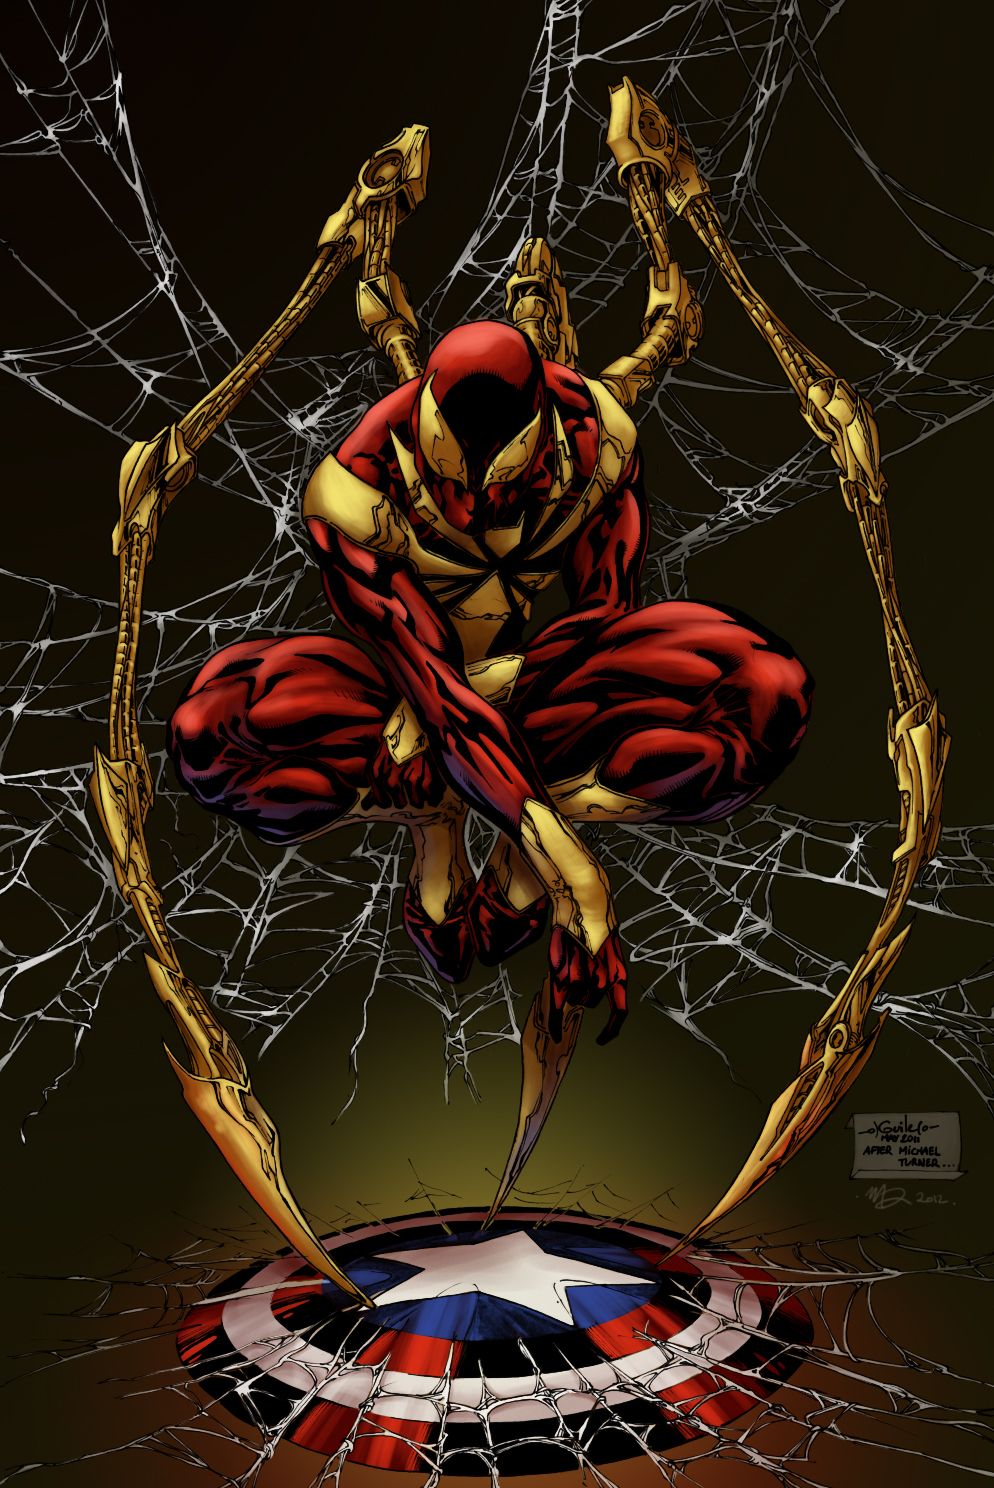 Marvel heroic role playing games Iron_spider_man___misda_colors_by_spiderguile-d50axwv